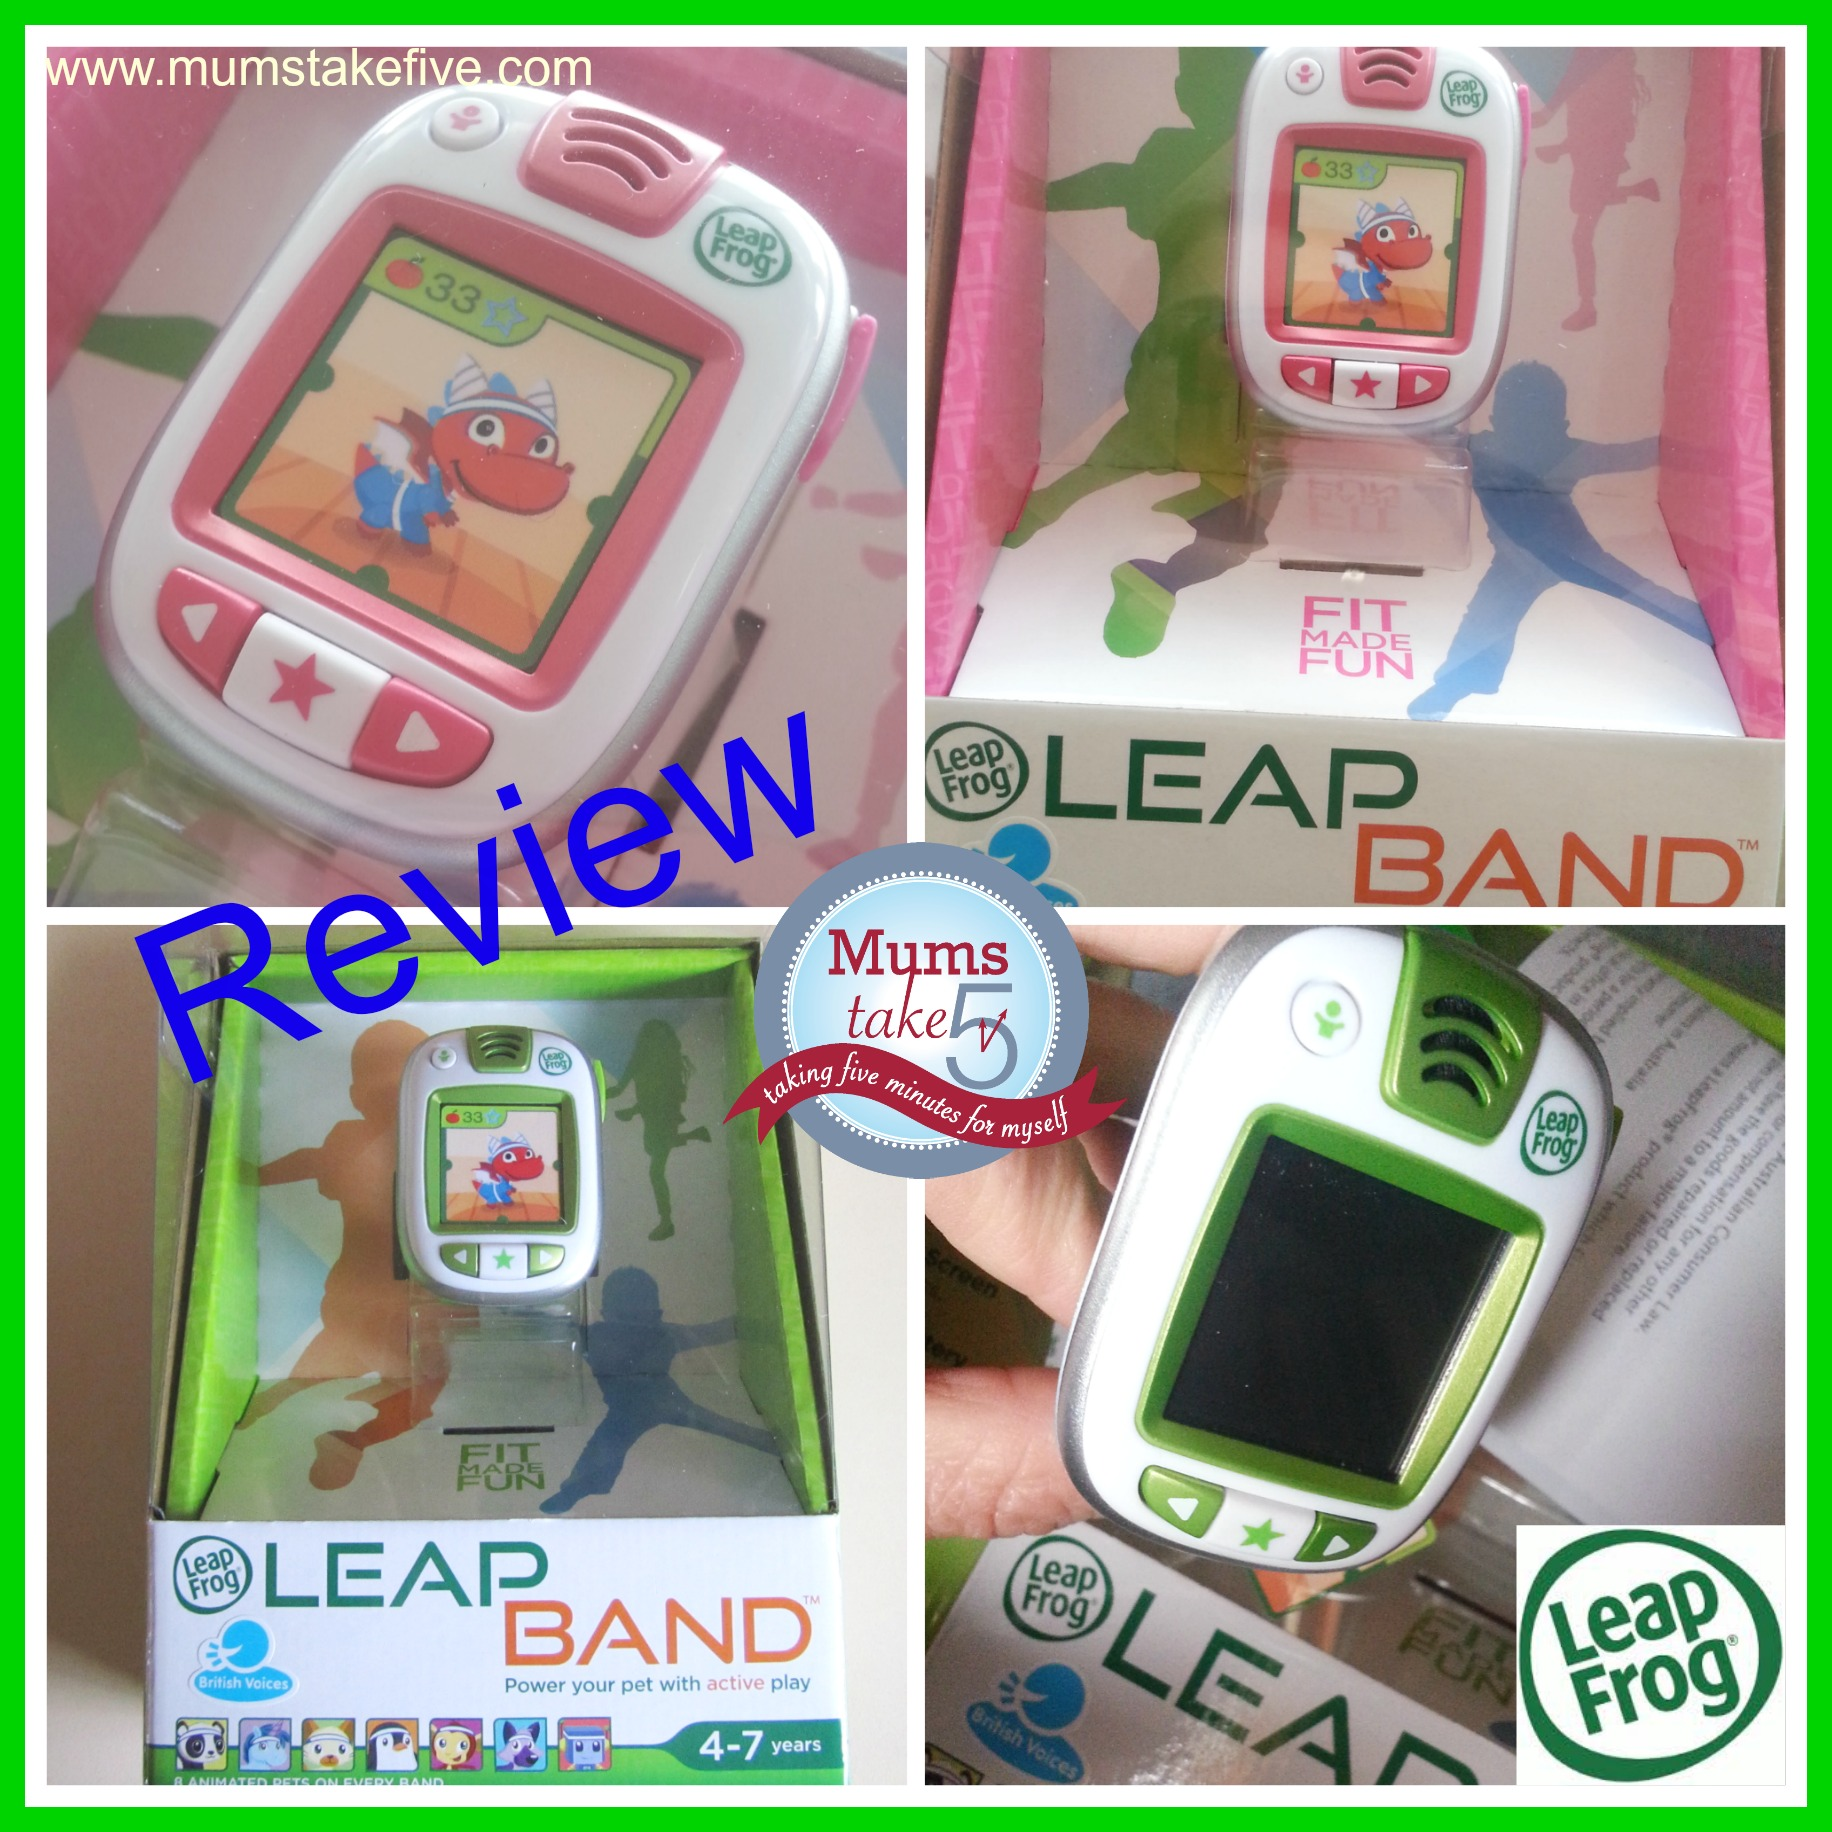 Leap Frog Leap Band Review